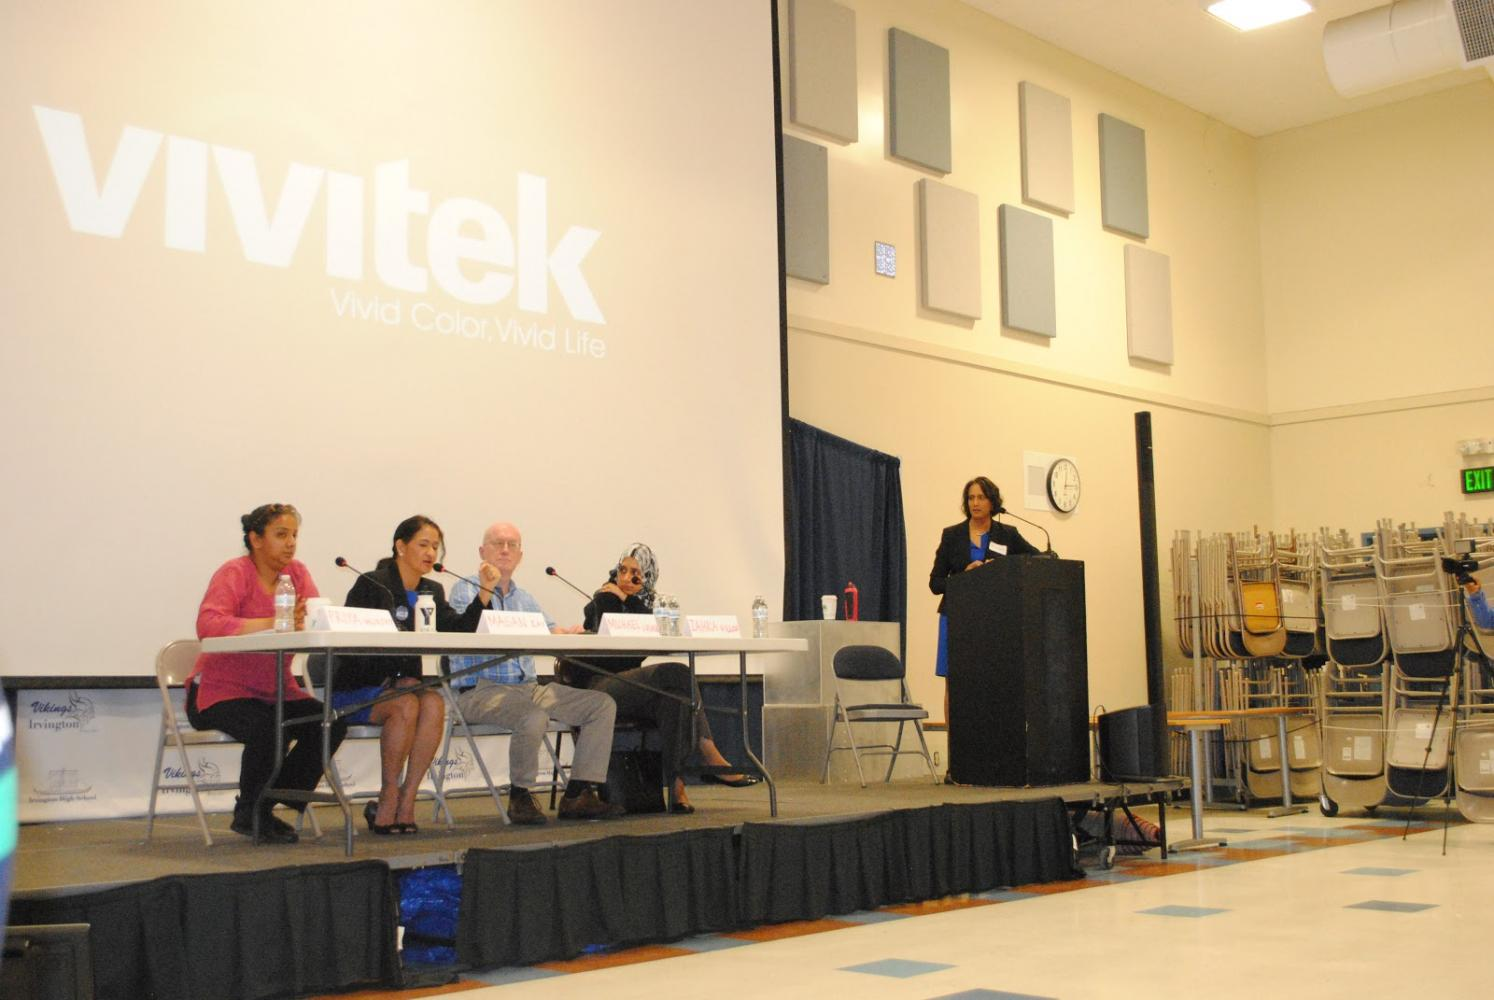 (From left to right) Priya Murthy, Magan Ray, Michael Chase, Zahra Billoo, and Kalpana Peddhibotla introduce themselves at the start of the forum